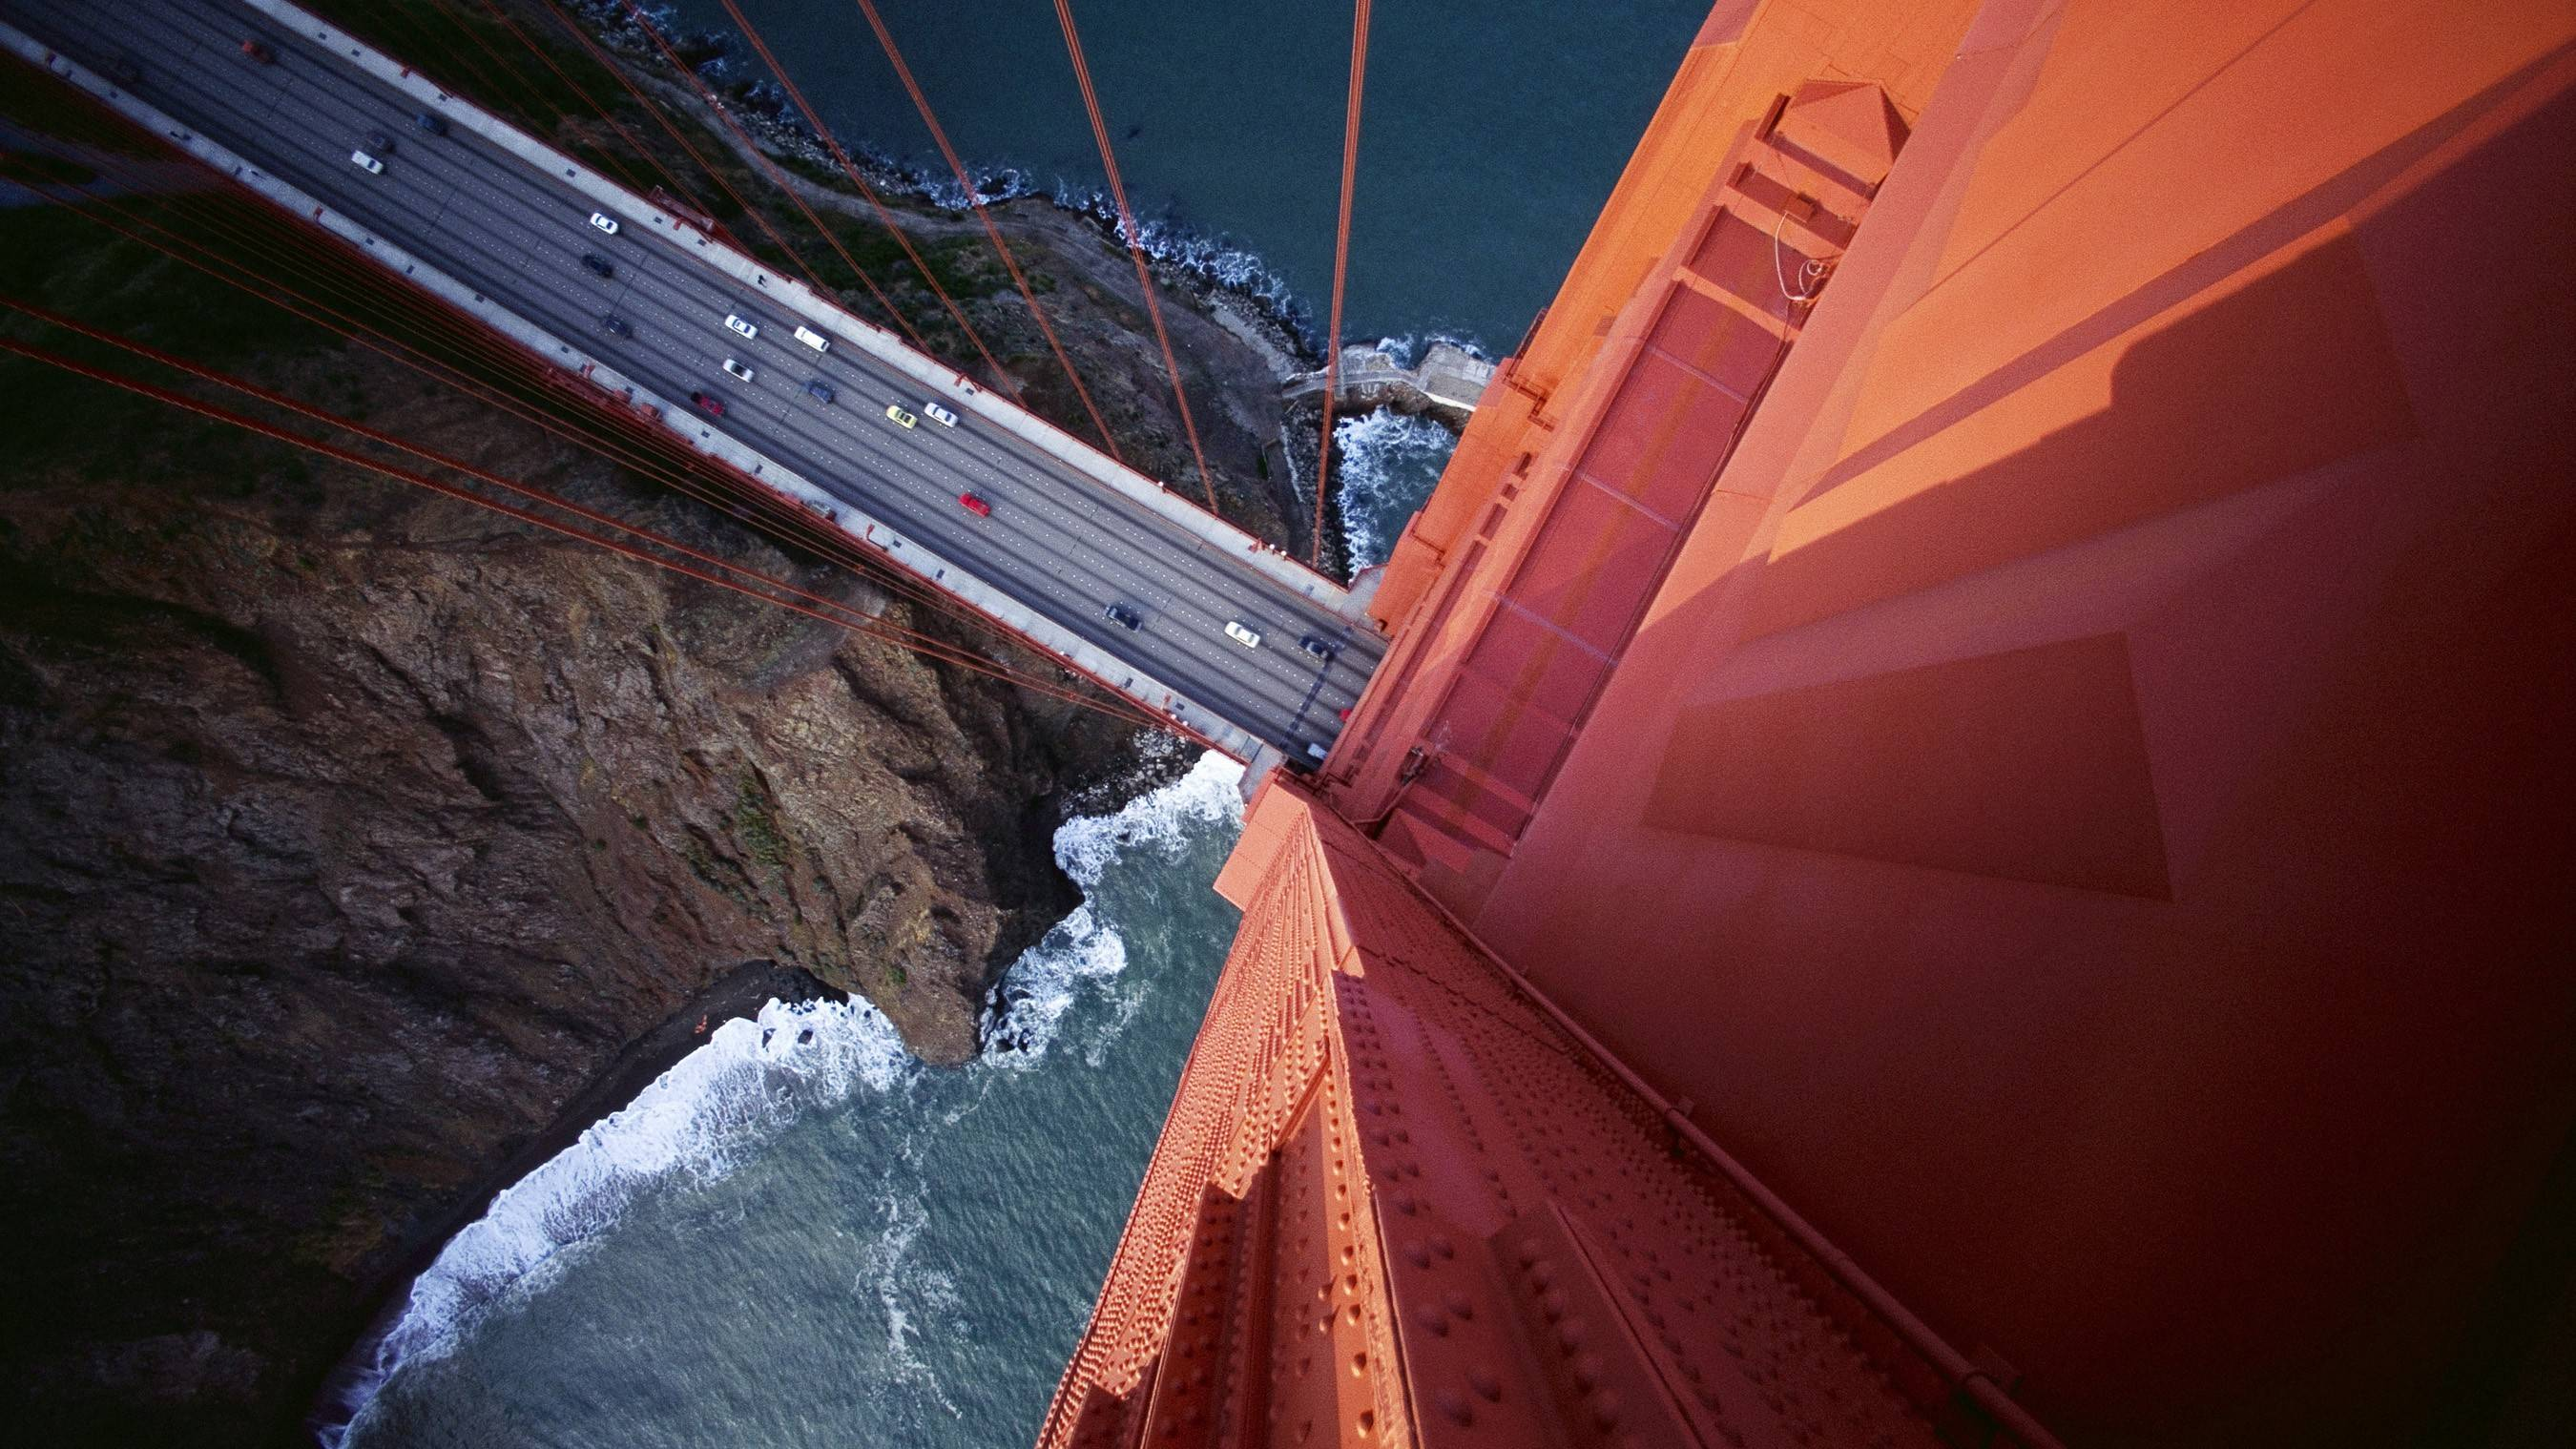 Golden Gate Bridge Wallpapers | HD Wallpapers Again